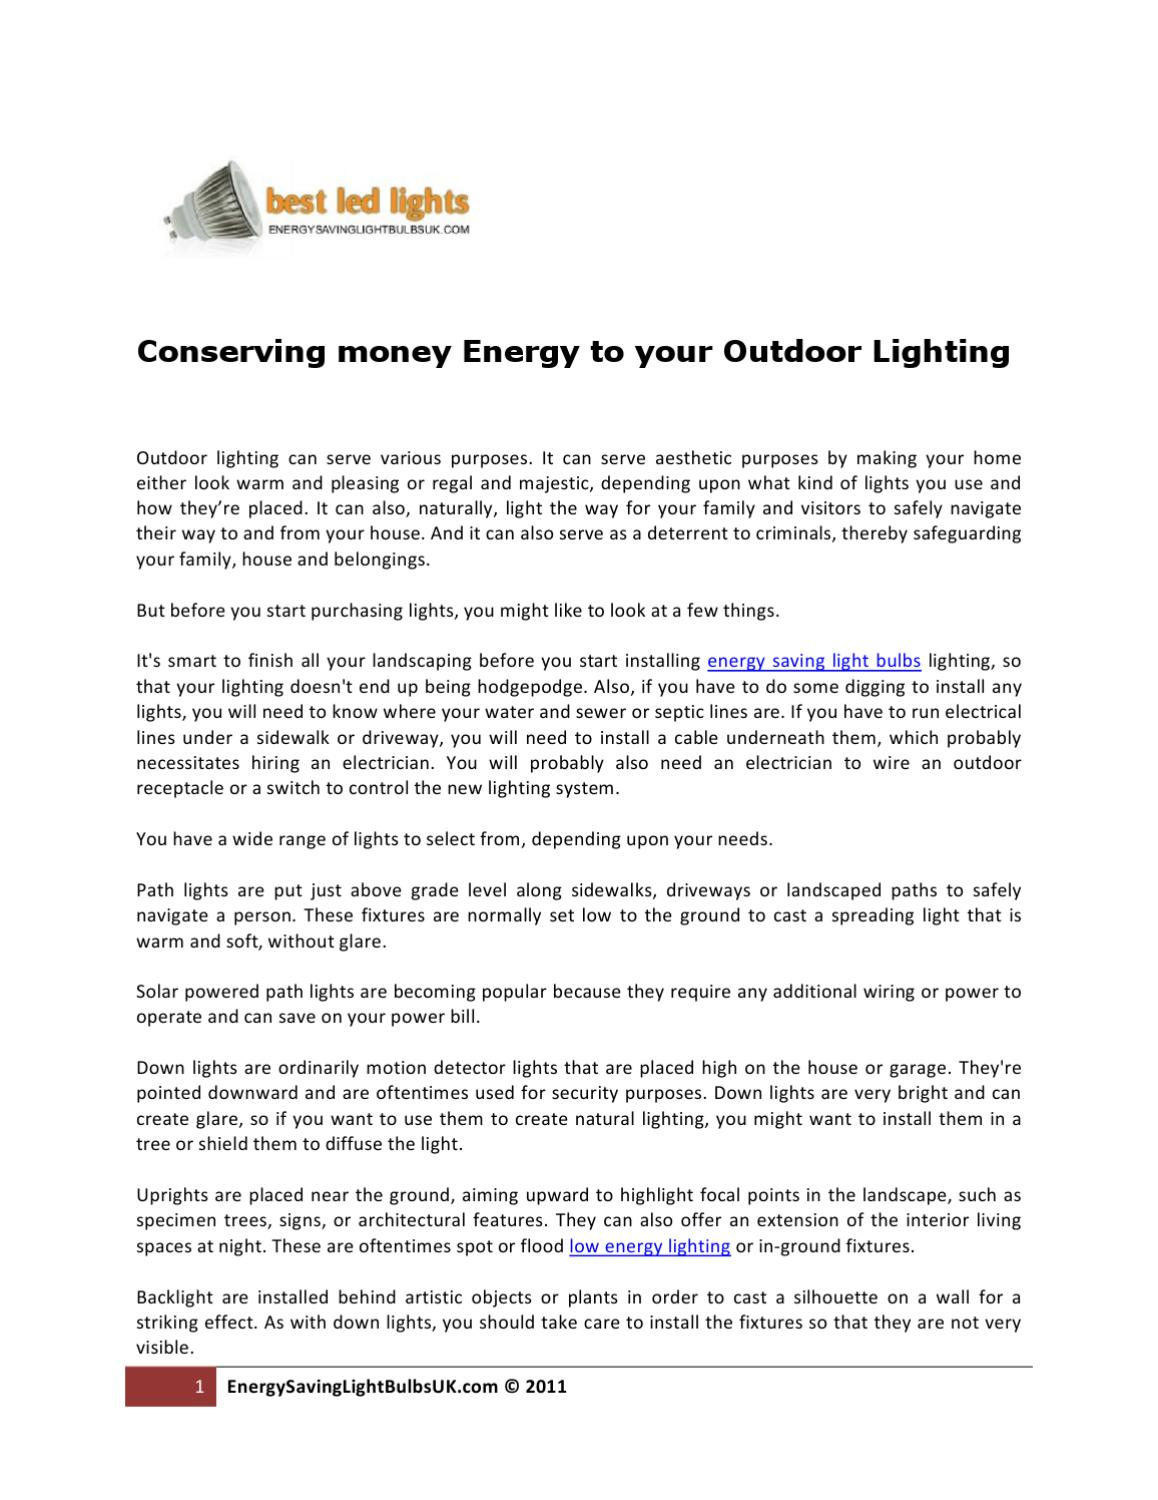 Conserving money Energy to your Outdoor Lighting by Tiia